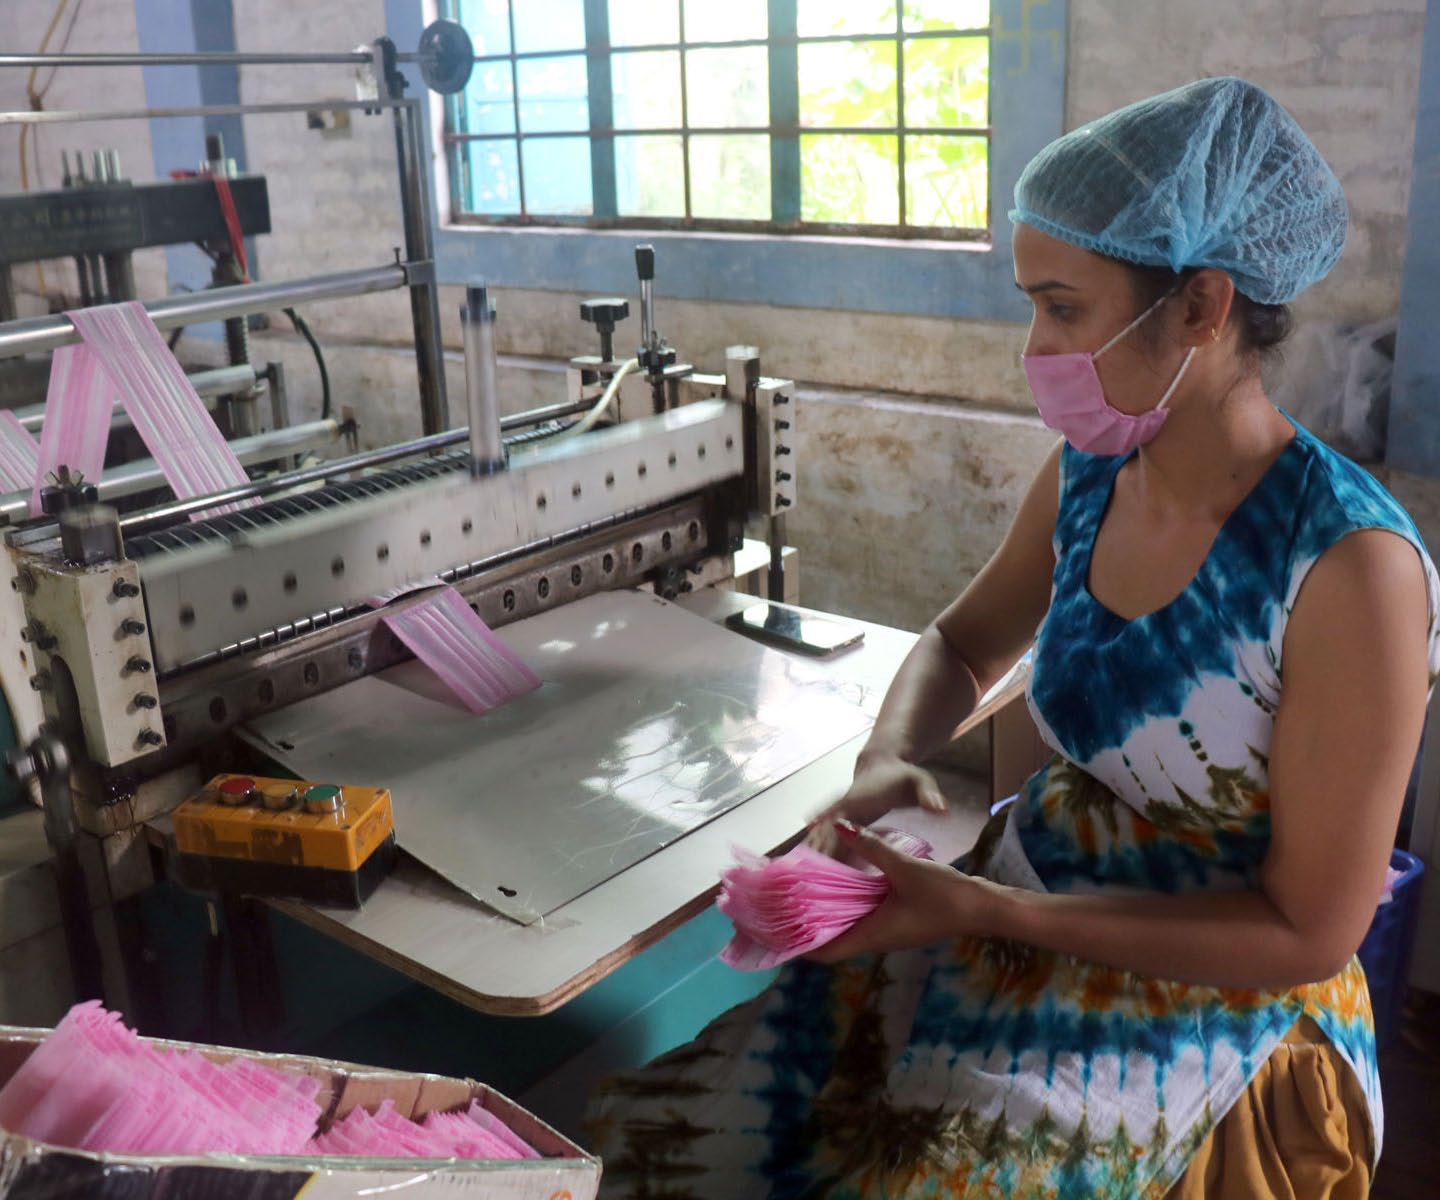 A worker tending to a machine producing face masks in Kshetrapur, Chitwan, on Wednesday. Photo: RSS